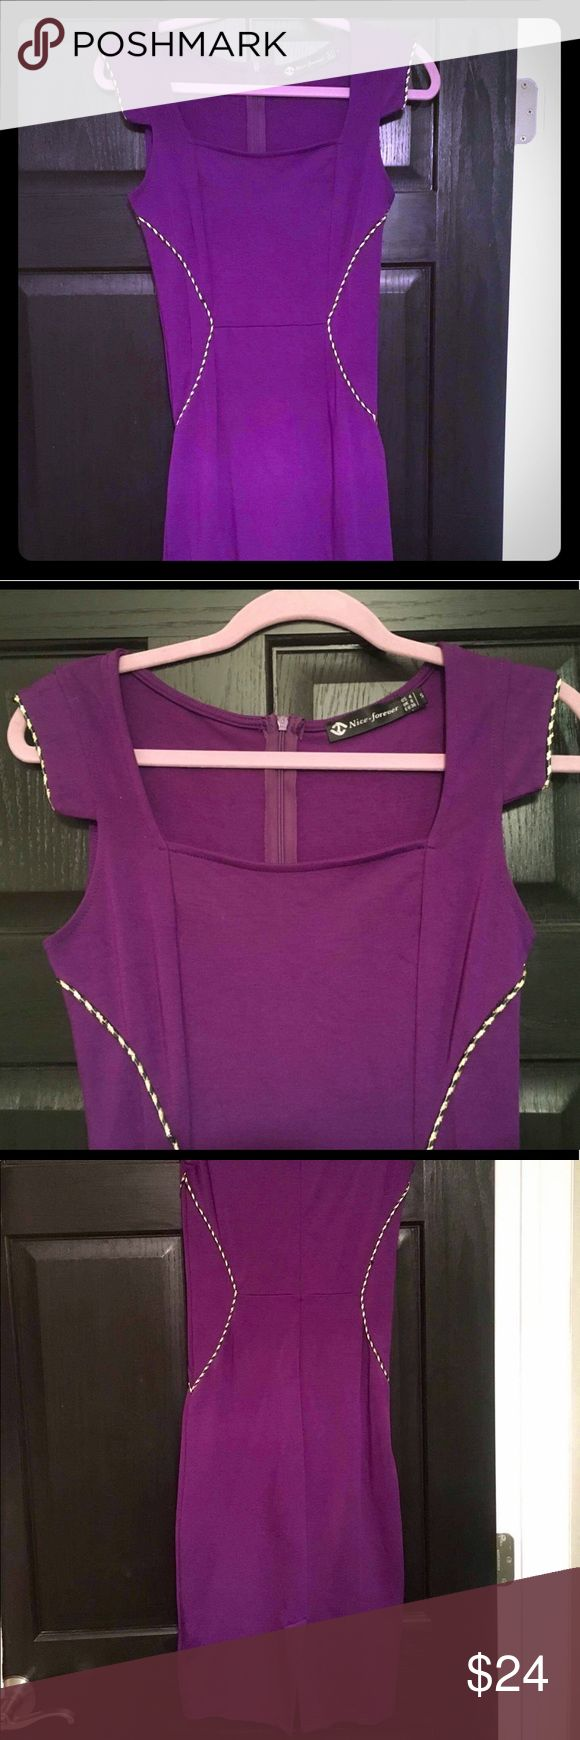 Purple pencil dress w/ embellished seams Flattering and stretchy purple pencil dress, embellished seams with twisted gold and black detail. Feminine but flirty short sleeves, can be worn to work or dresses up for a night out. Size small, fits a 2 or 4. Barely worn, color is a true regal purple Nice Forever Dresses Midi